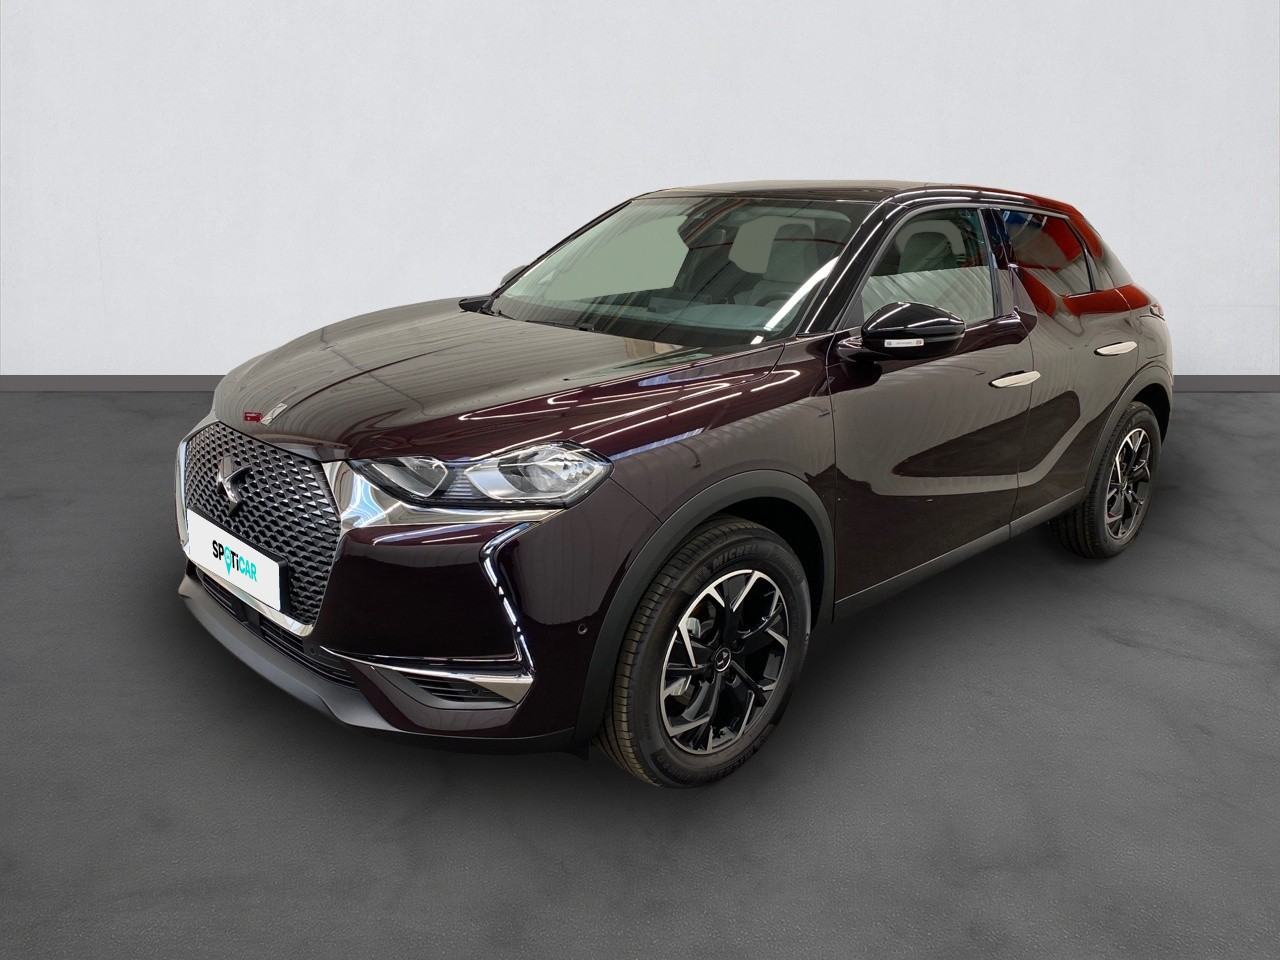 DS 3 CROSSBACK DS 3 CROSSBACK BLUEHDI 100 S&S BVM6 SO CHIC